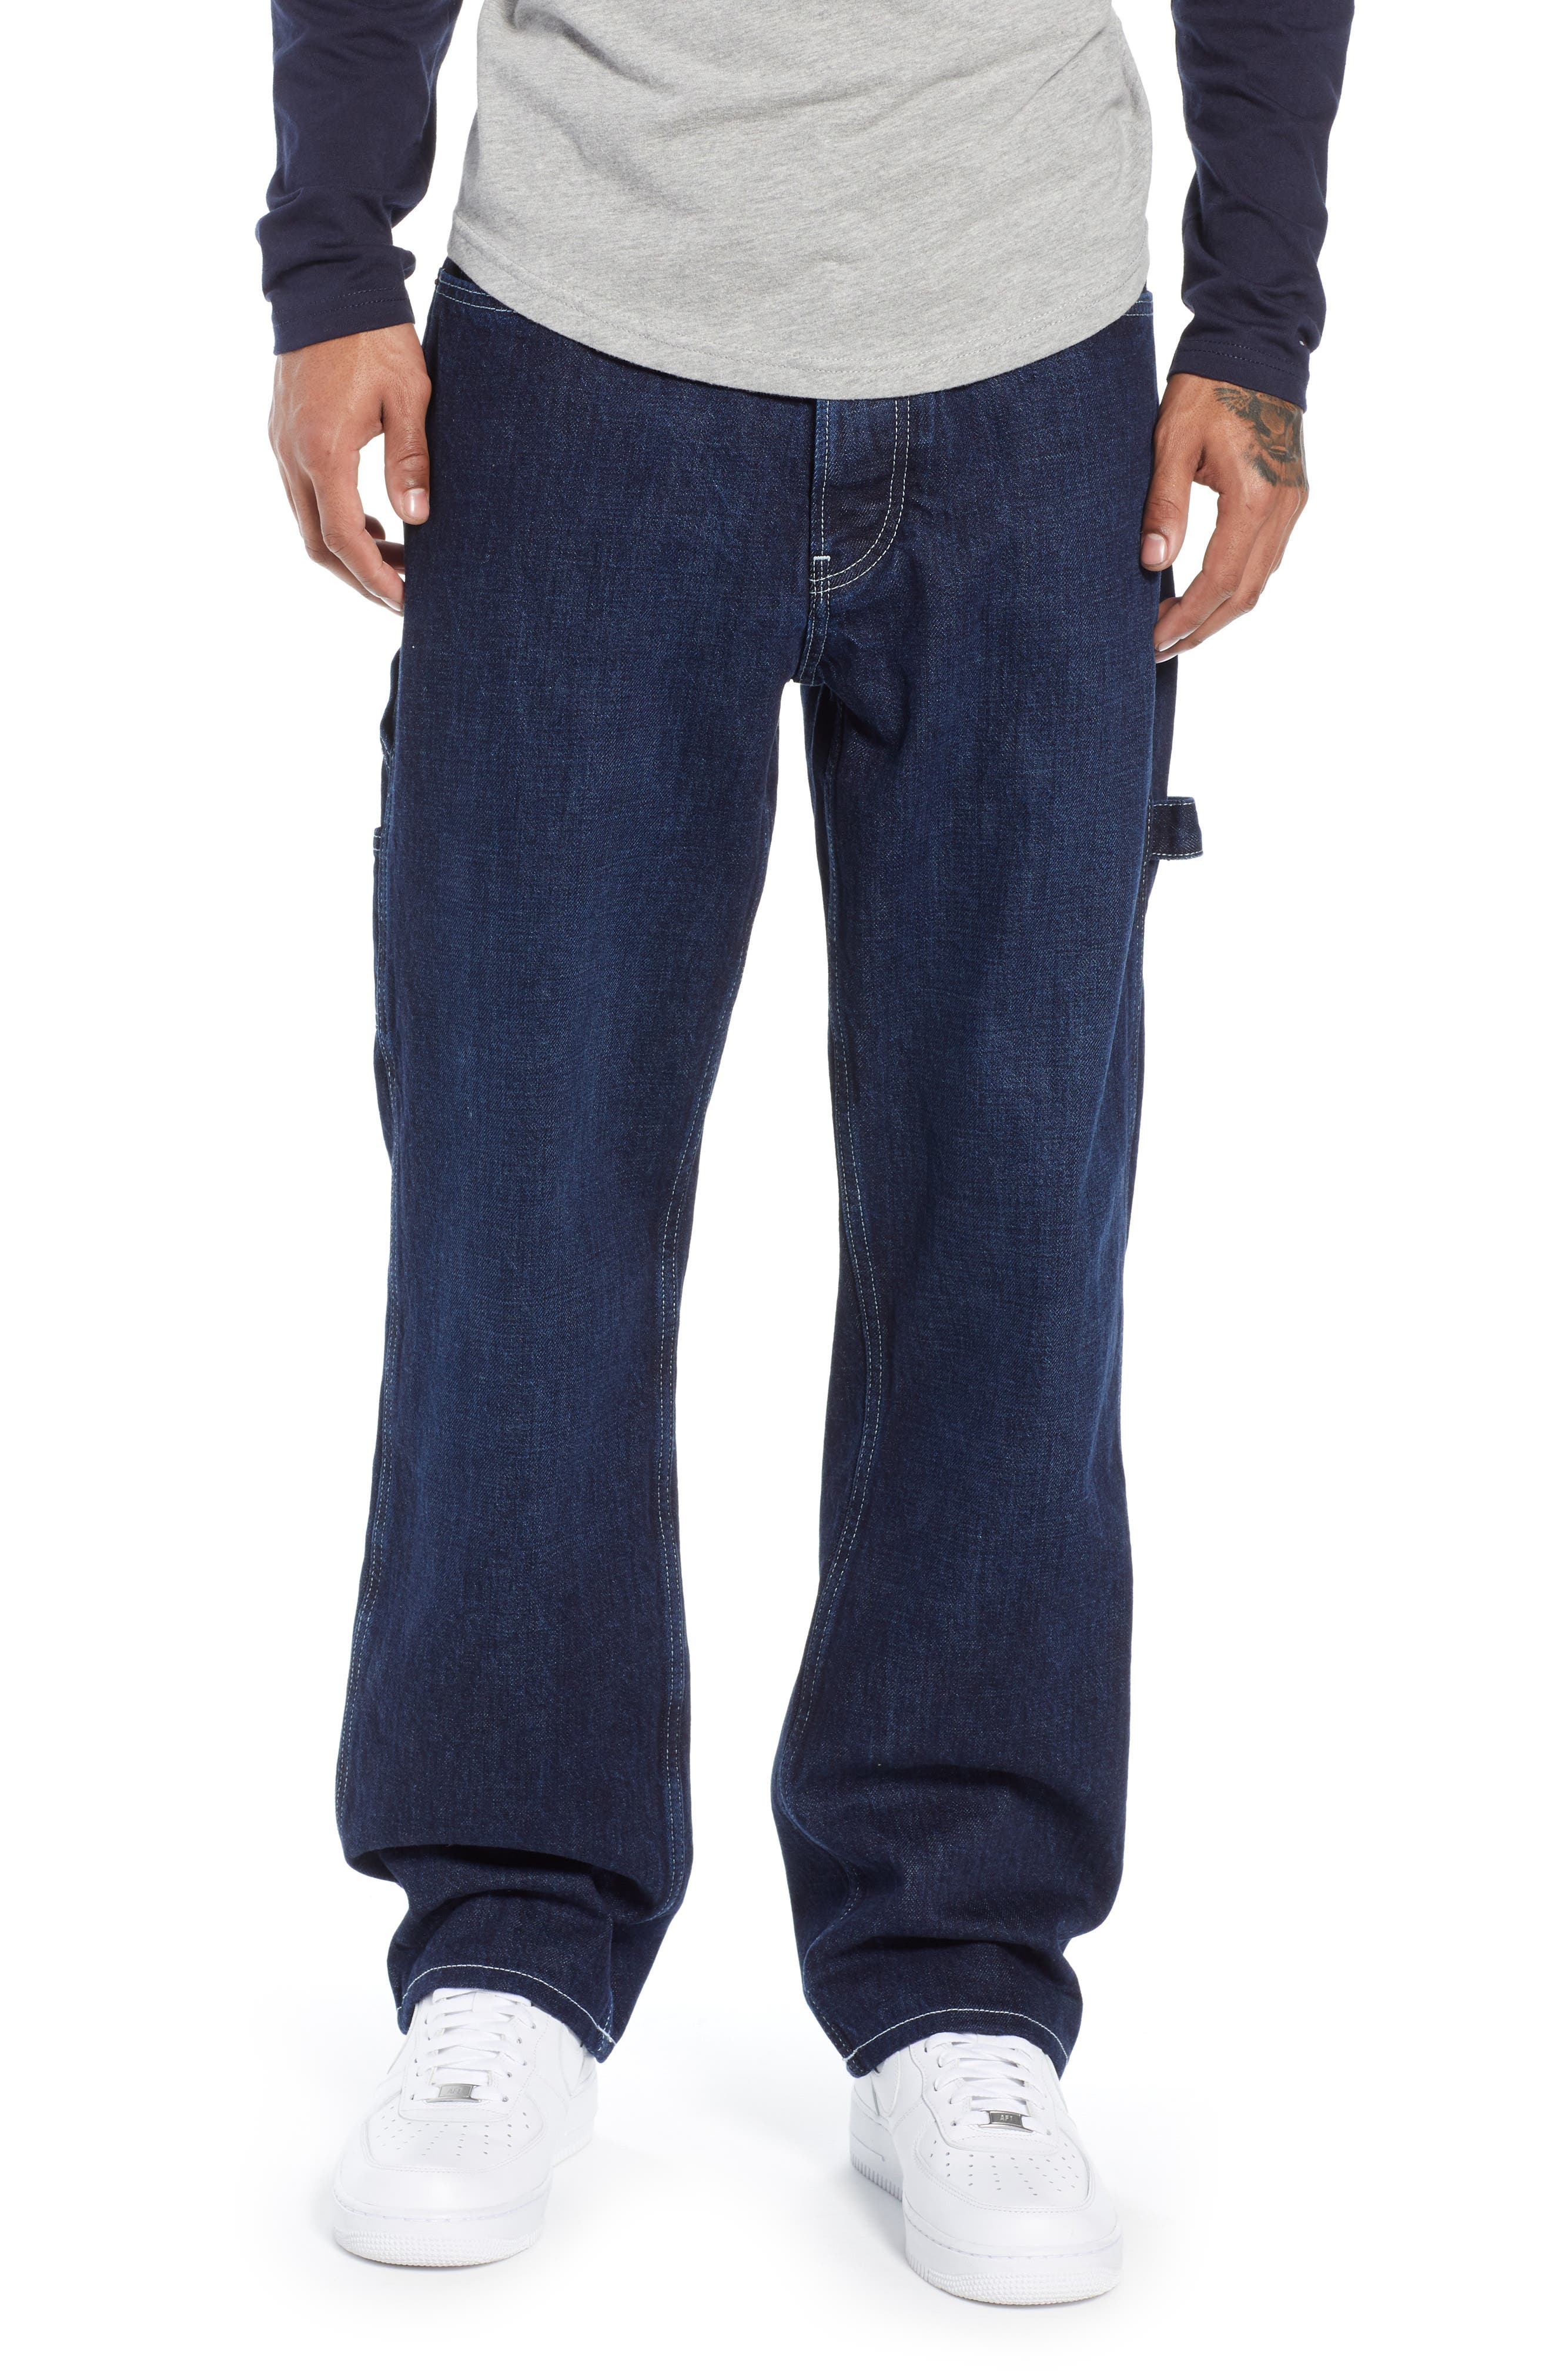 TJM 1986 Relaxed Carpenter Pants,                             Main thumbnail 1, color,                             CONTRAST DARK RIG